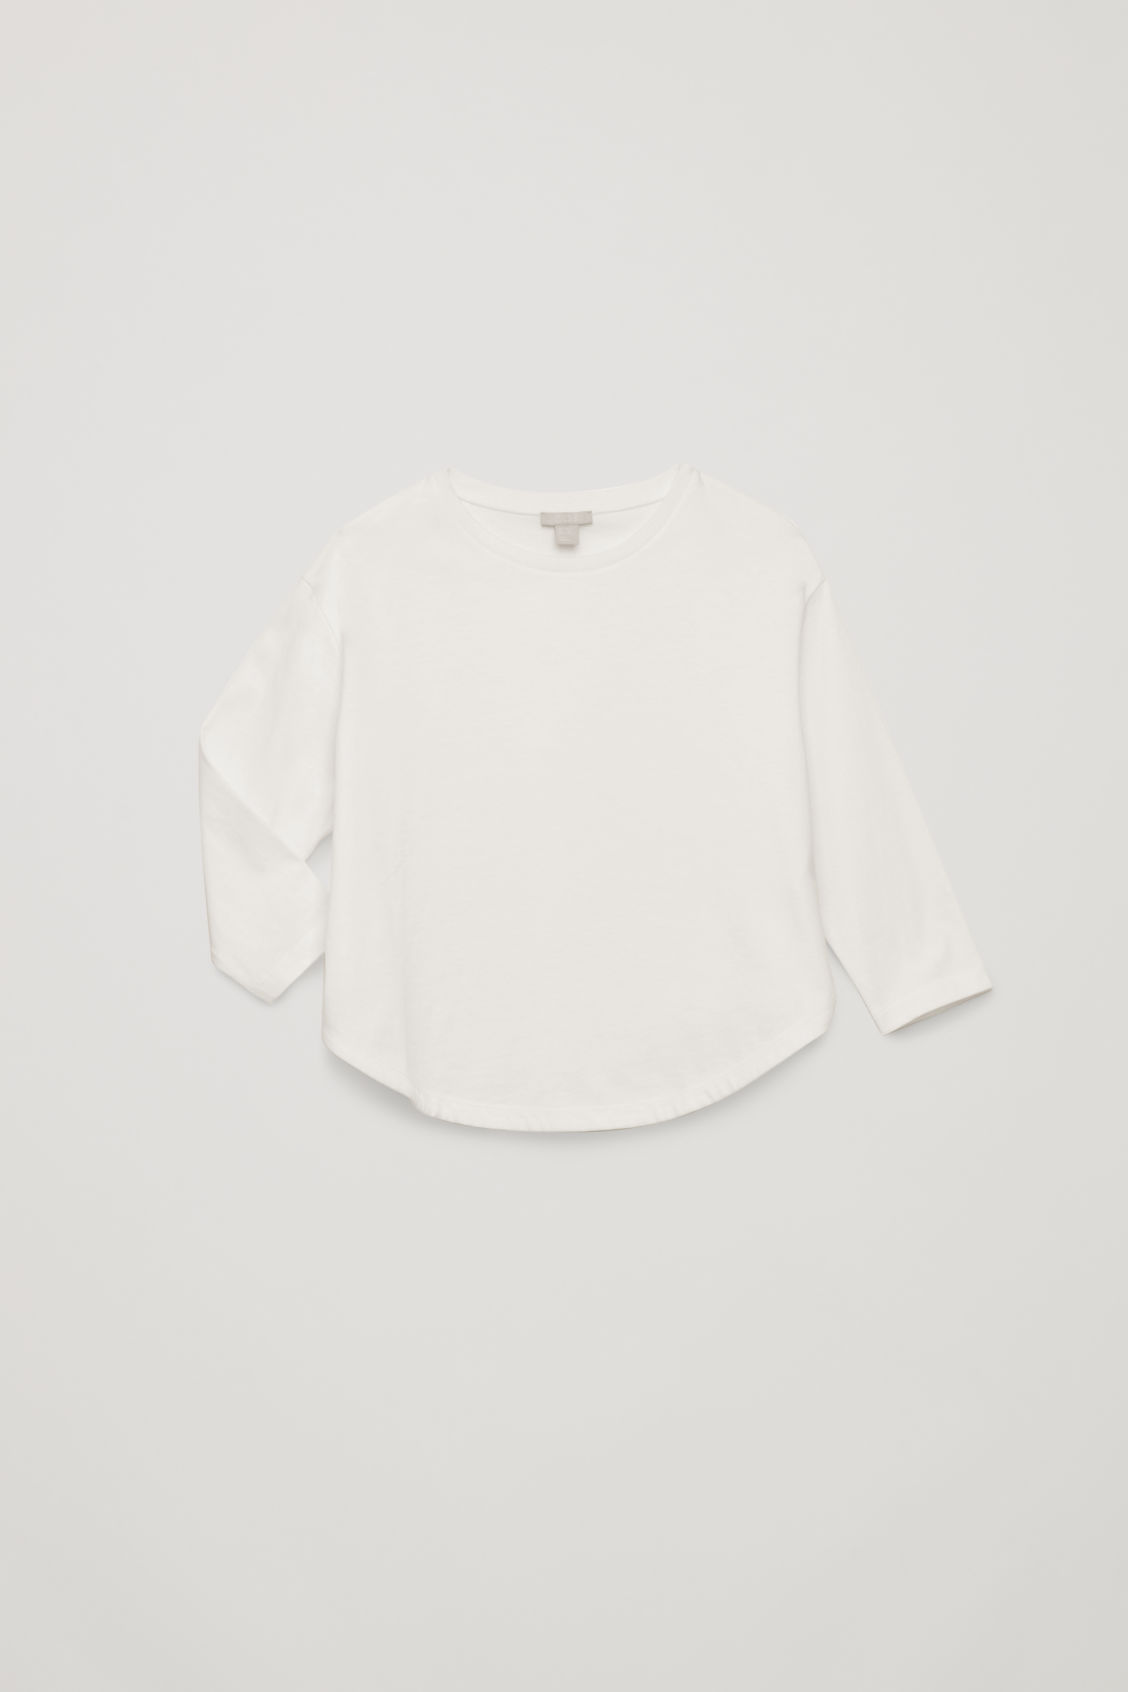 Detailed image of Cos circle-cut jersey top in white